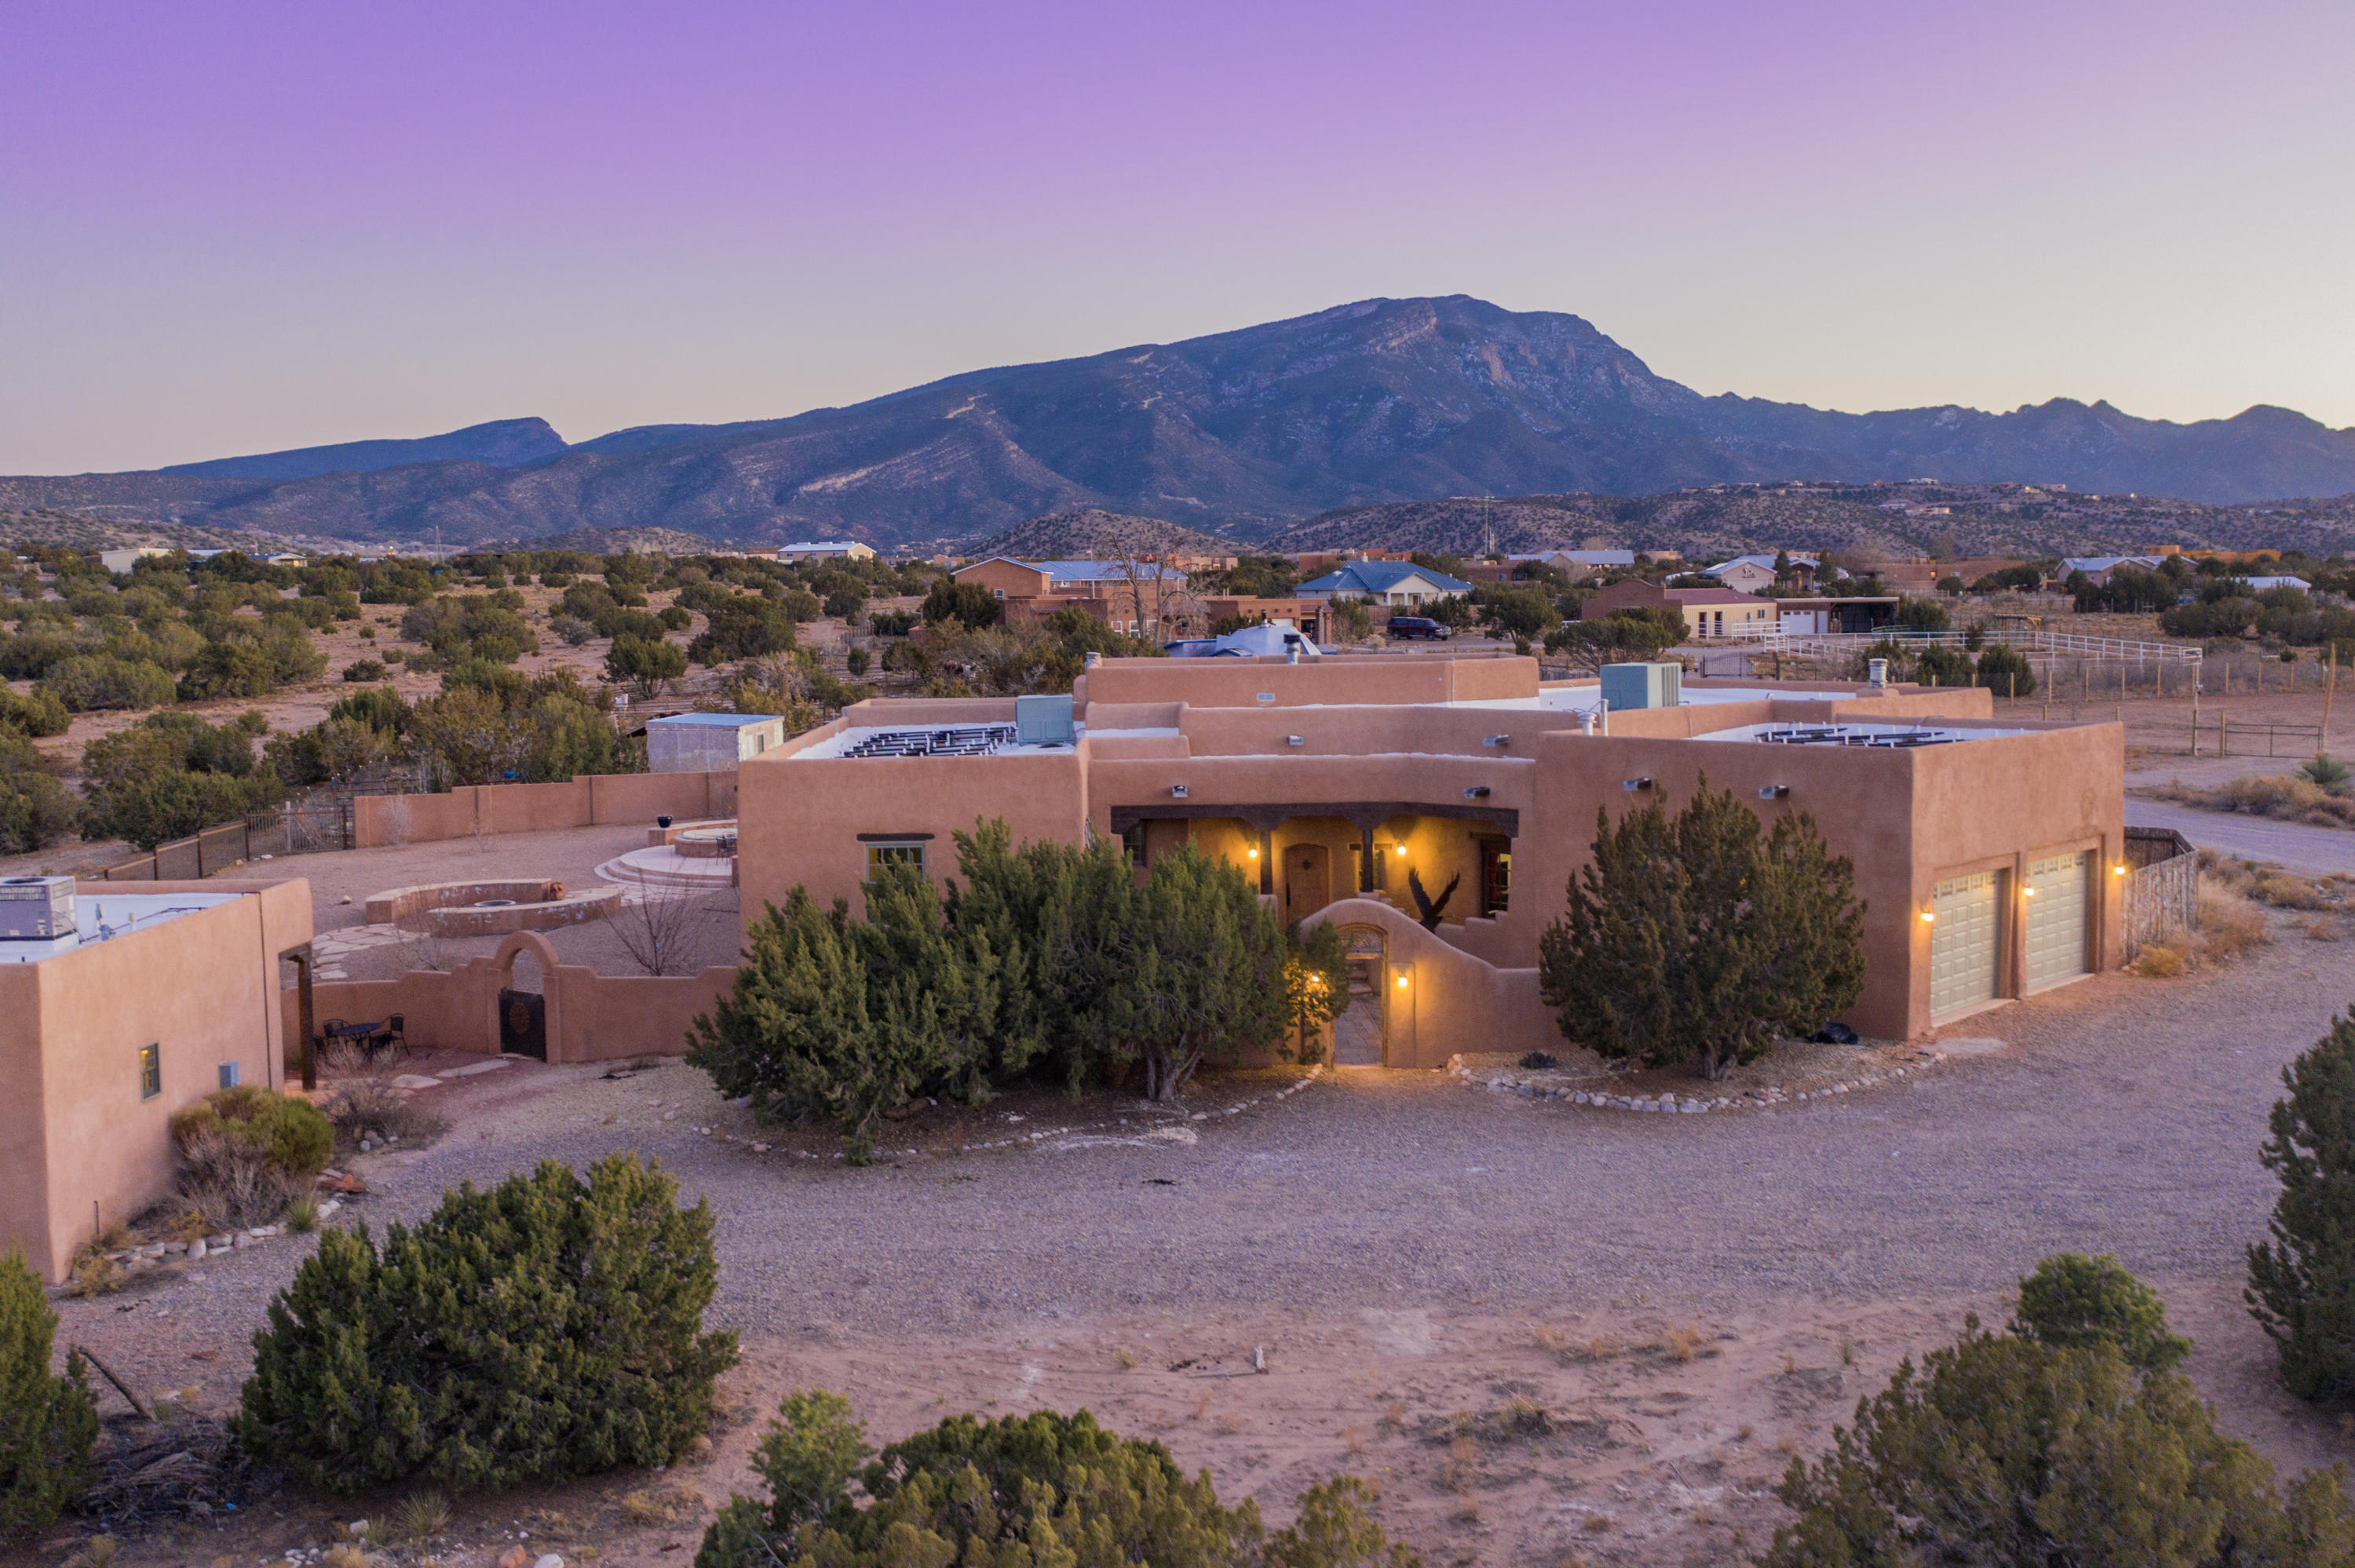 11 TOAD ROAD, PLACITAS, NM 87043